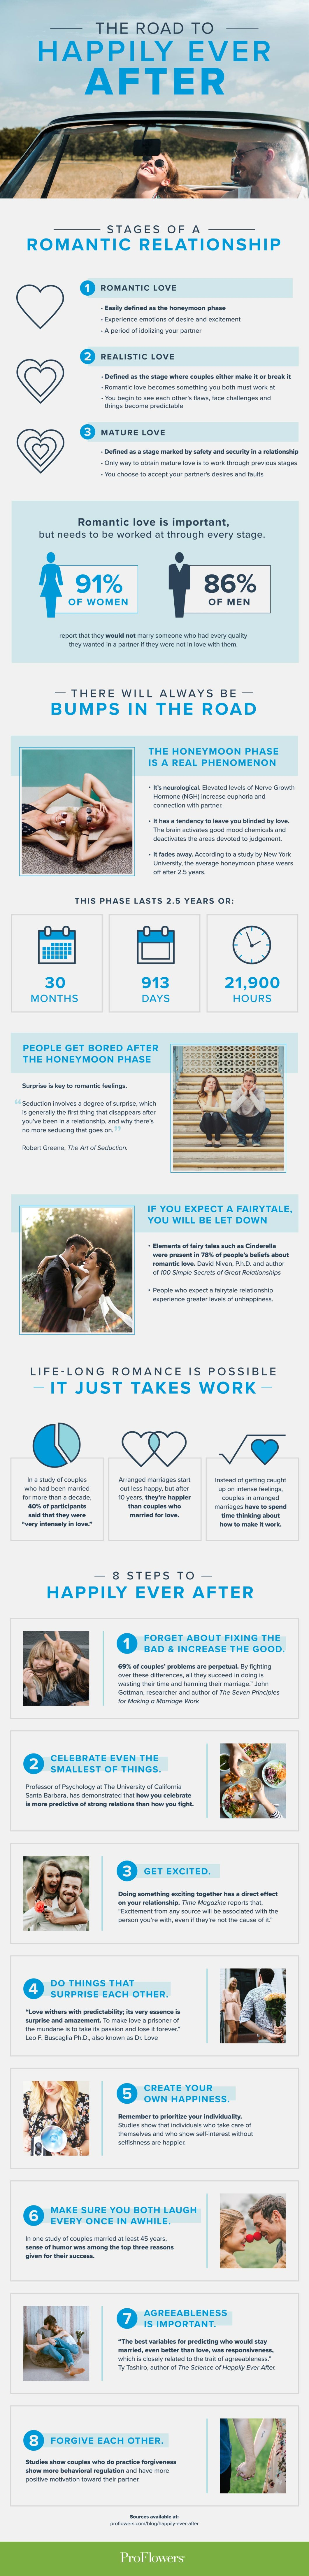 How to Get Your 'Happily Ever After' Relationship - Infographic